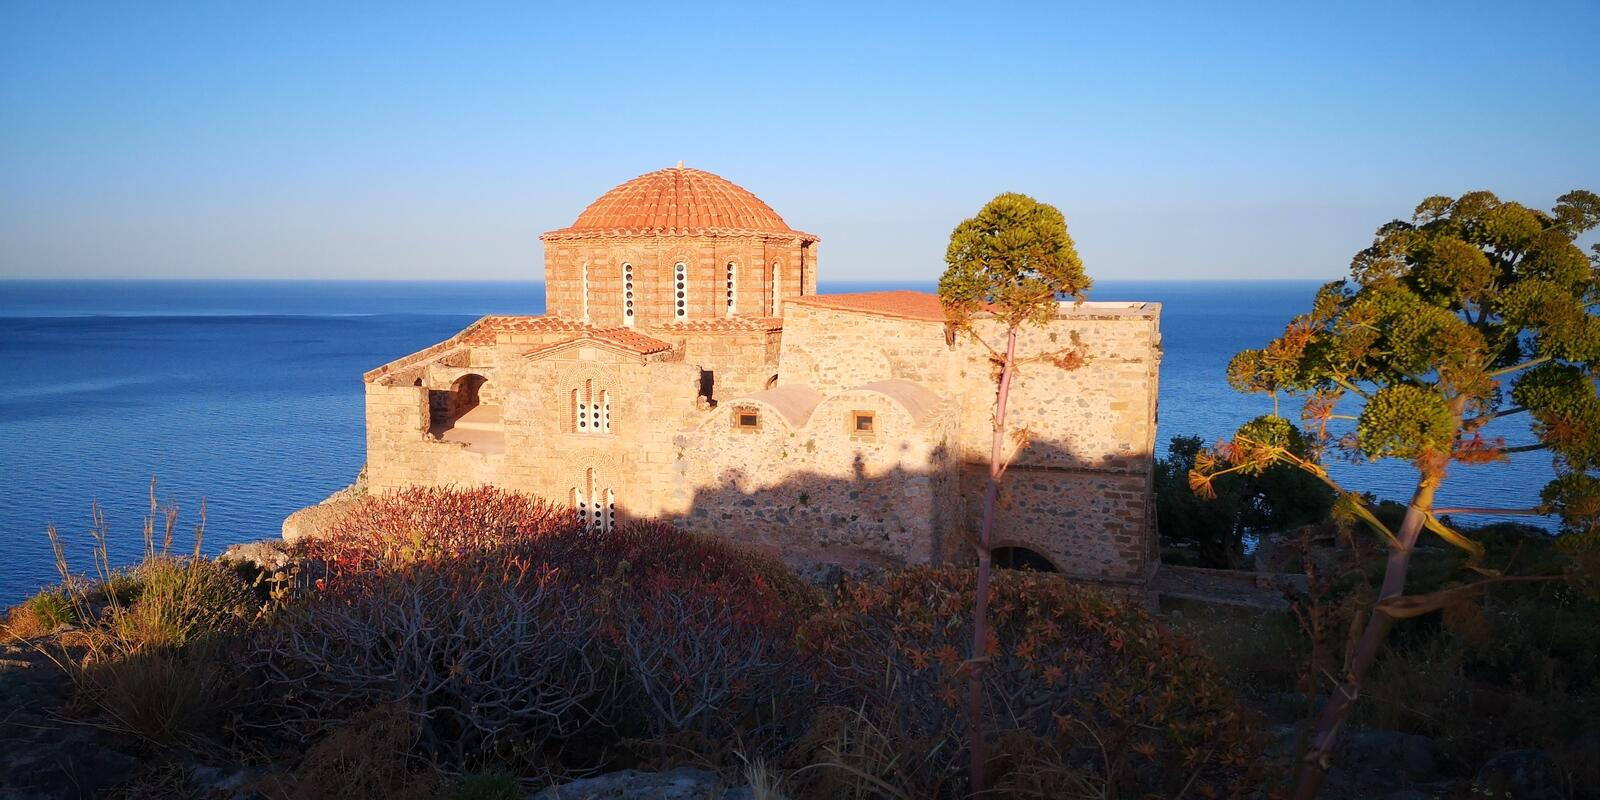 From the Saronic Gulf to the East of Peloponnese the cocktail NAVIGATION-RELAXATION-COMFORT-CULTURE and YOU